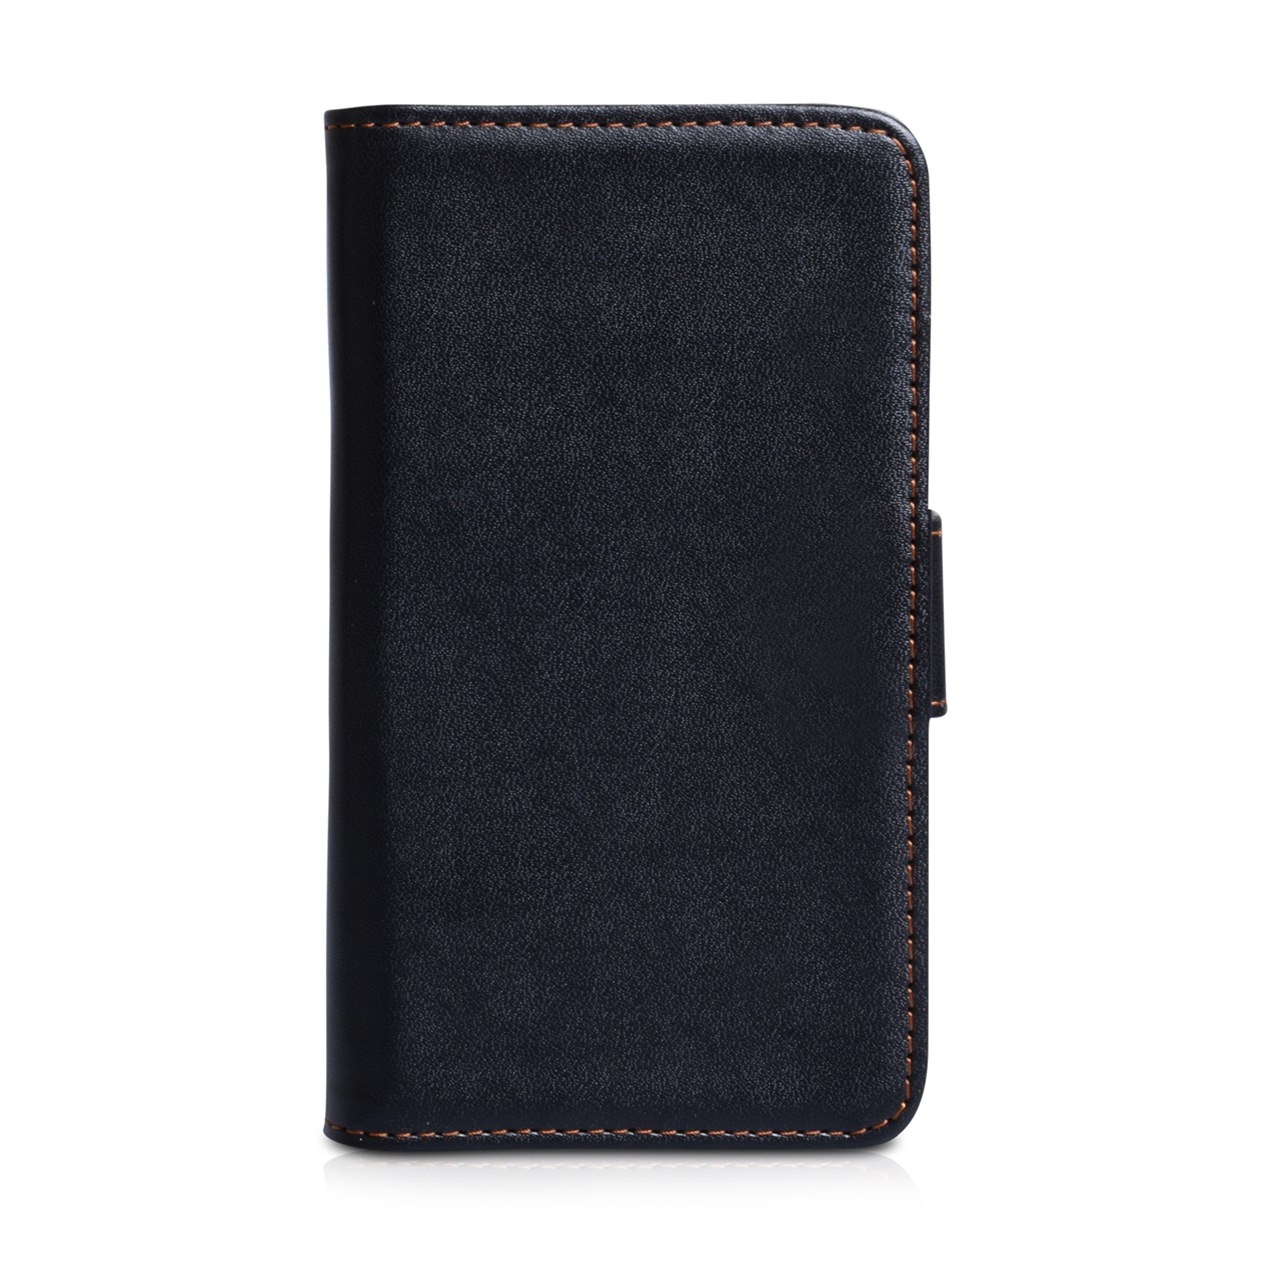 YouSave Accessories Nokia Lumia 520 Leather Effect Wallet Case - Black